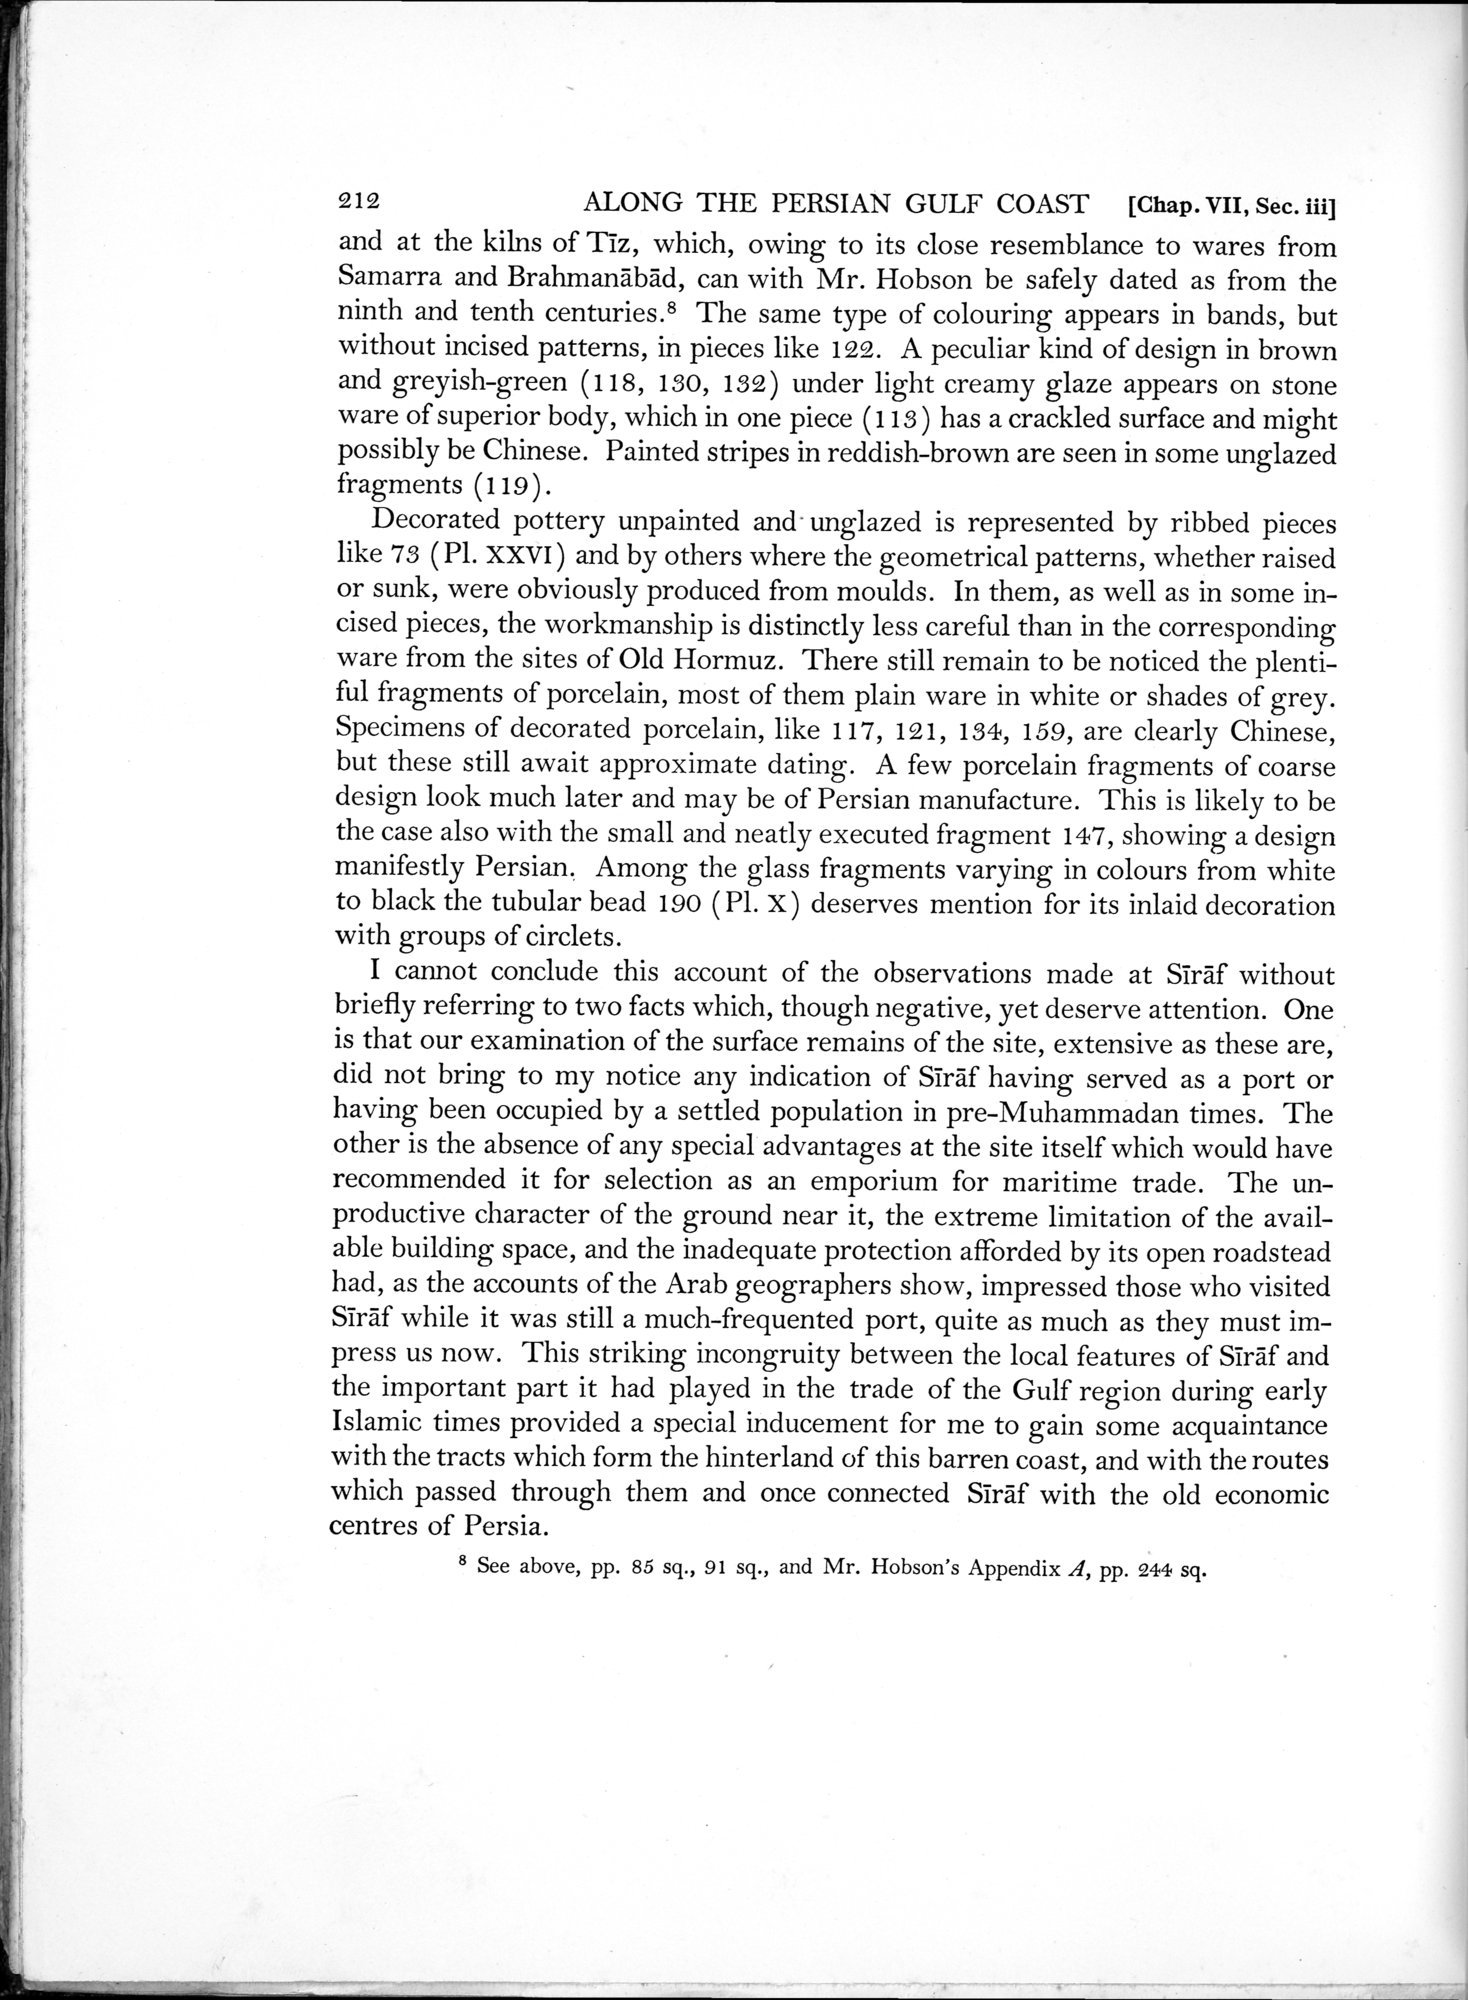 Archaeological Reconnaissances in North-Western India and South-Eastern Īrān : vol.1 / Page 288 (Grayscale High Resolution Image)